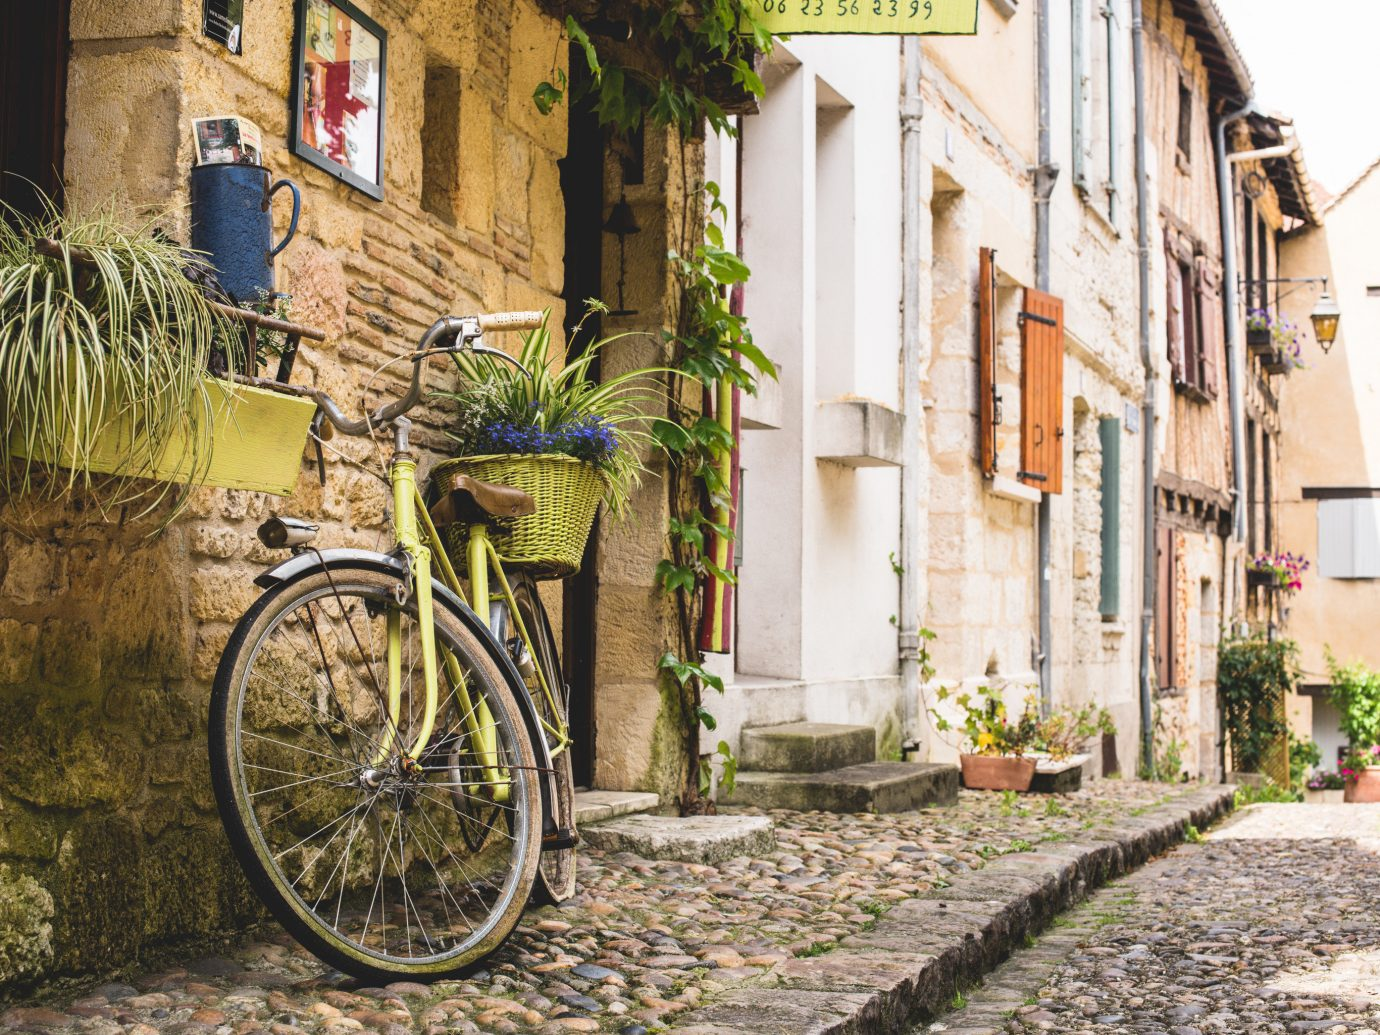 Health + Wellness Meditation Retreats Trip Ideas Yoga Retreats outdoor bicycle building ground way road parked Town lane neighbourhood street residential area alley scene human settlement sidewalk Village infrastructure suburb cycling vehicle mountain bike stone curb